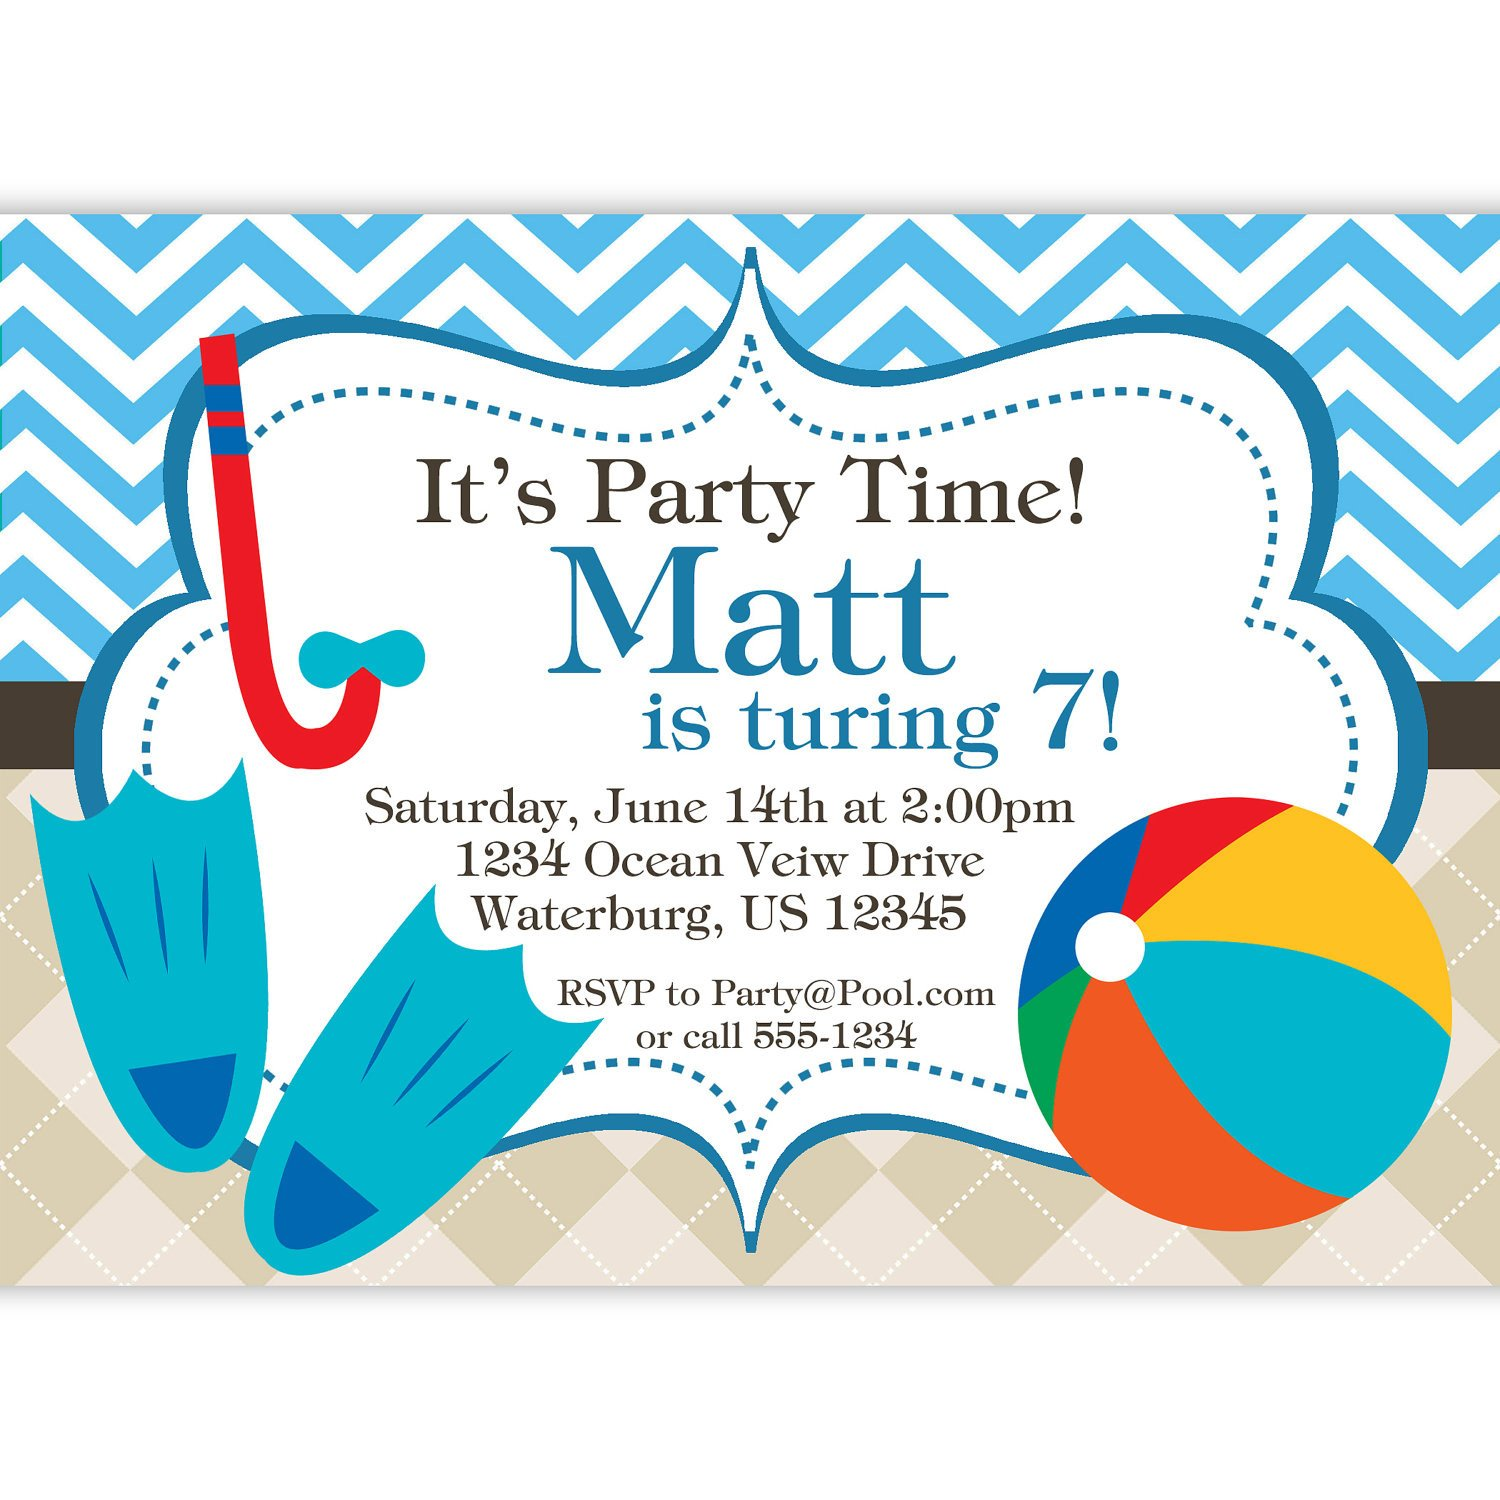 Printable Pool Party Invitations Free Printable Birthday Pool Party Invitations